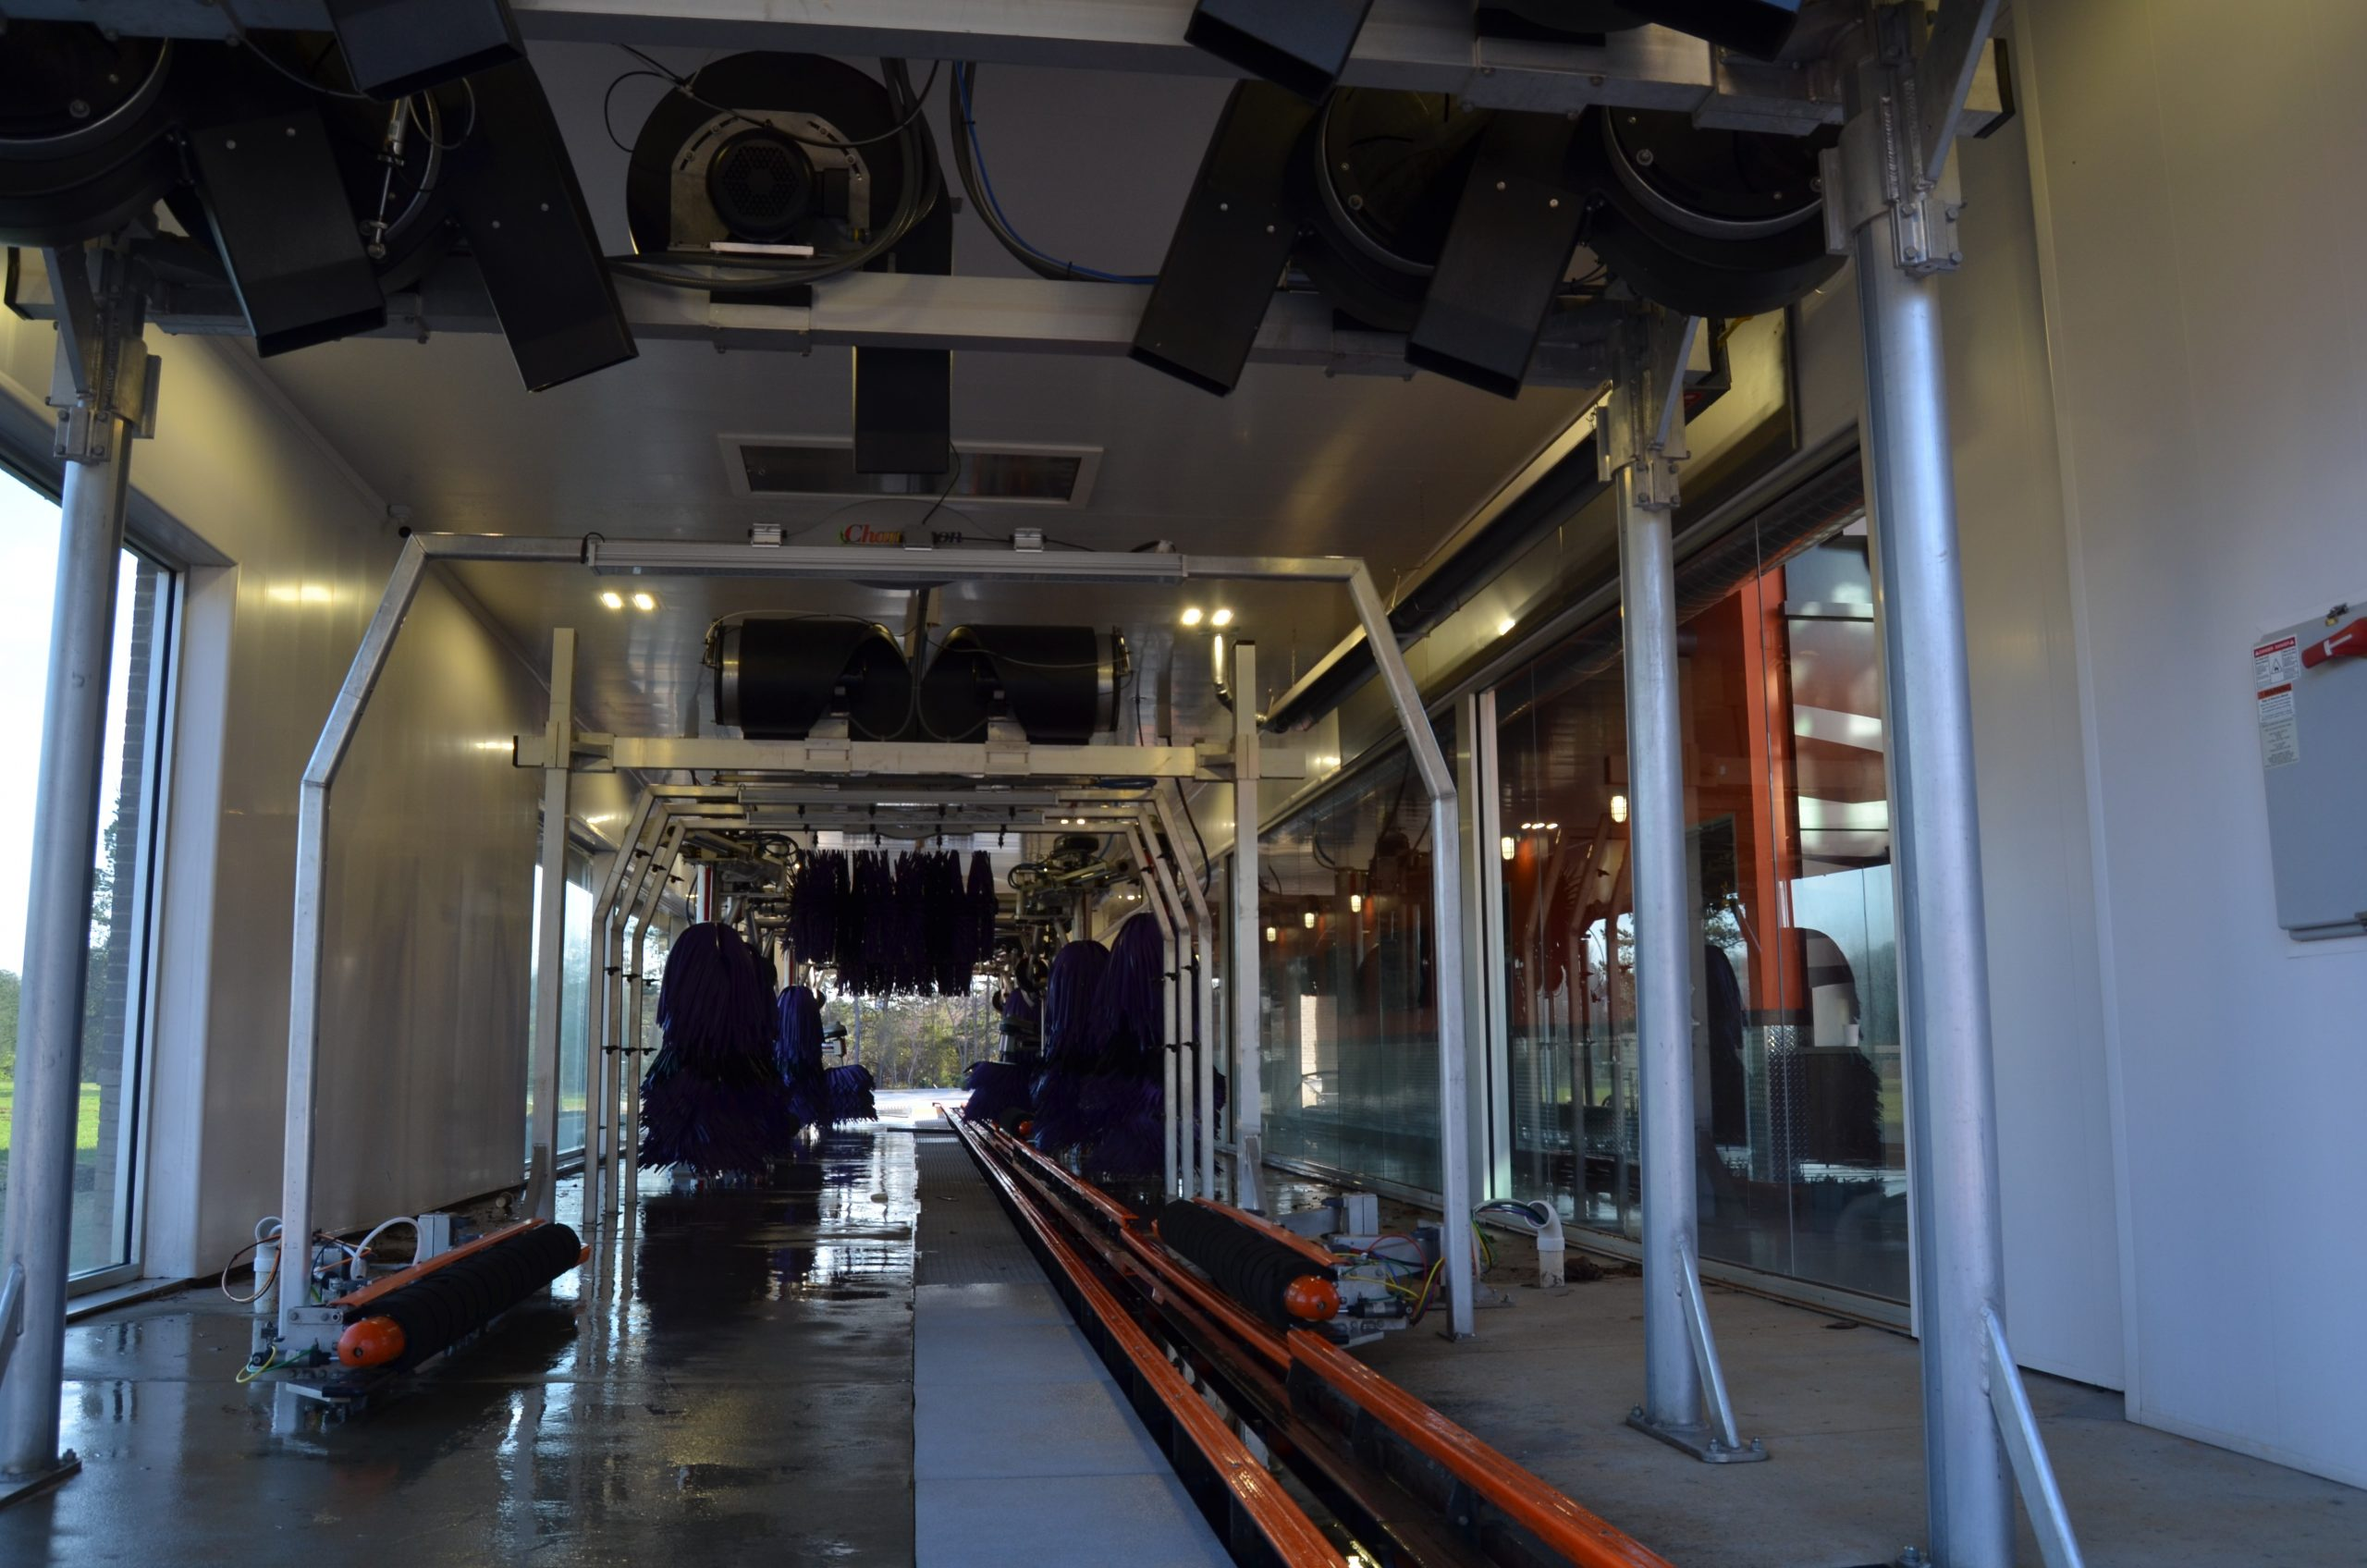 Inside the Sam's Xpress car wash (Photo by Dusty Wallace)